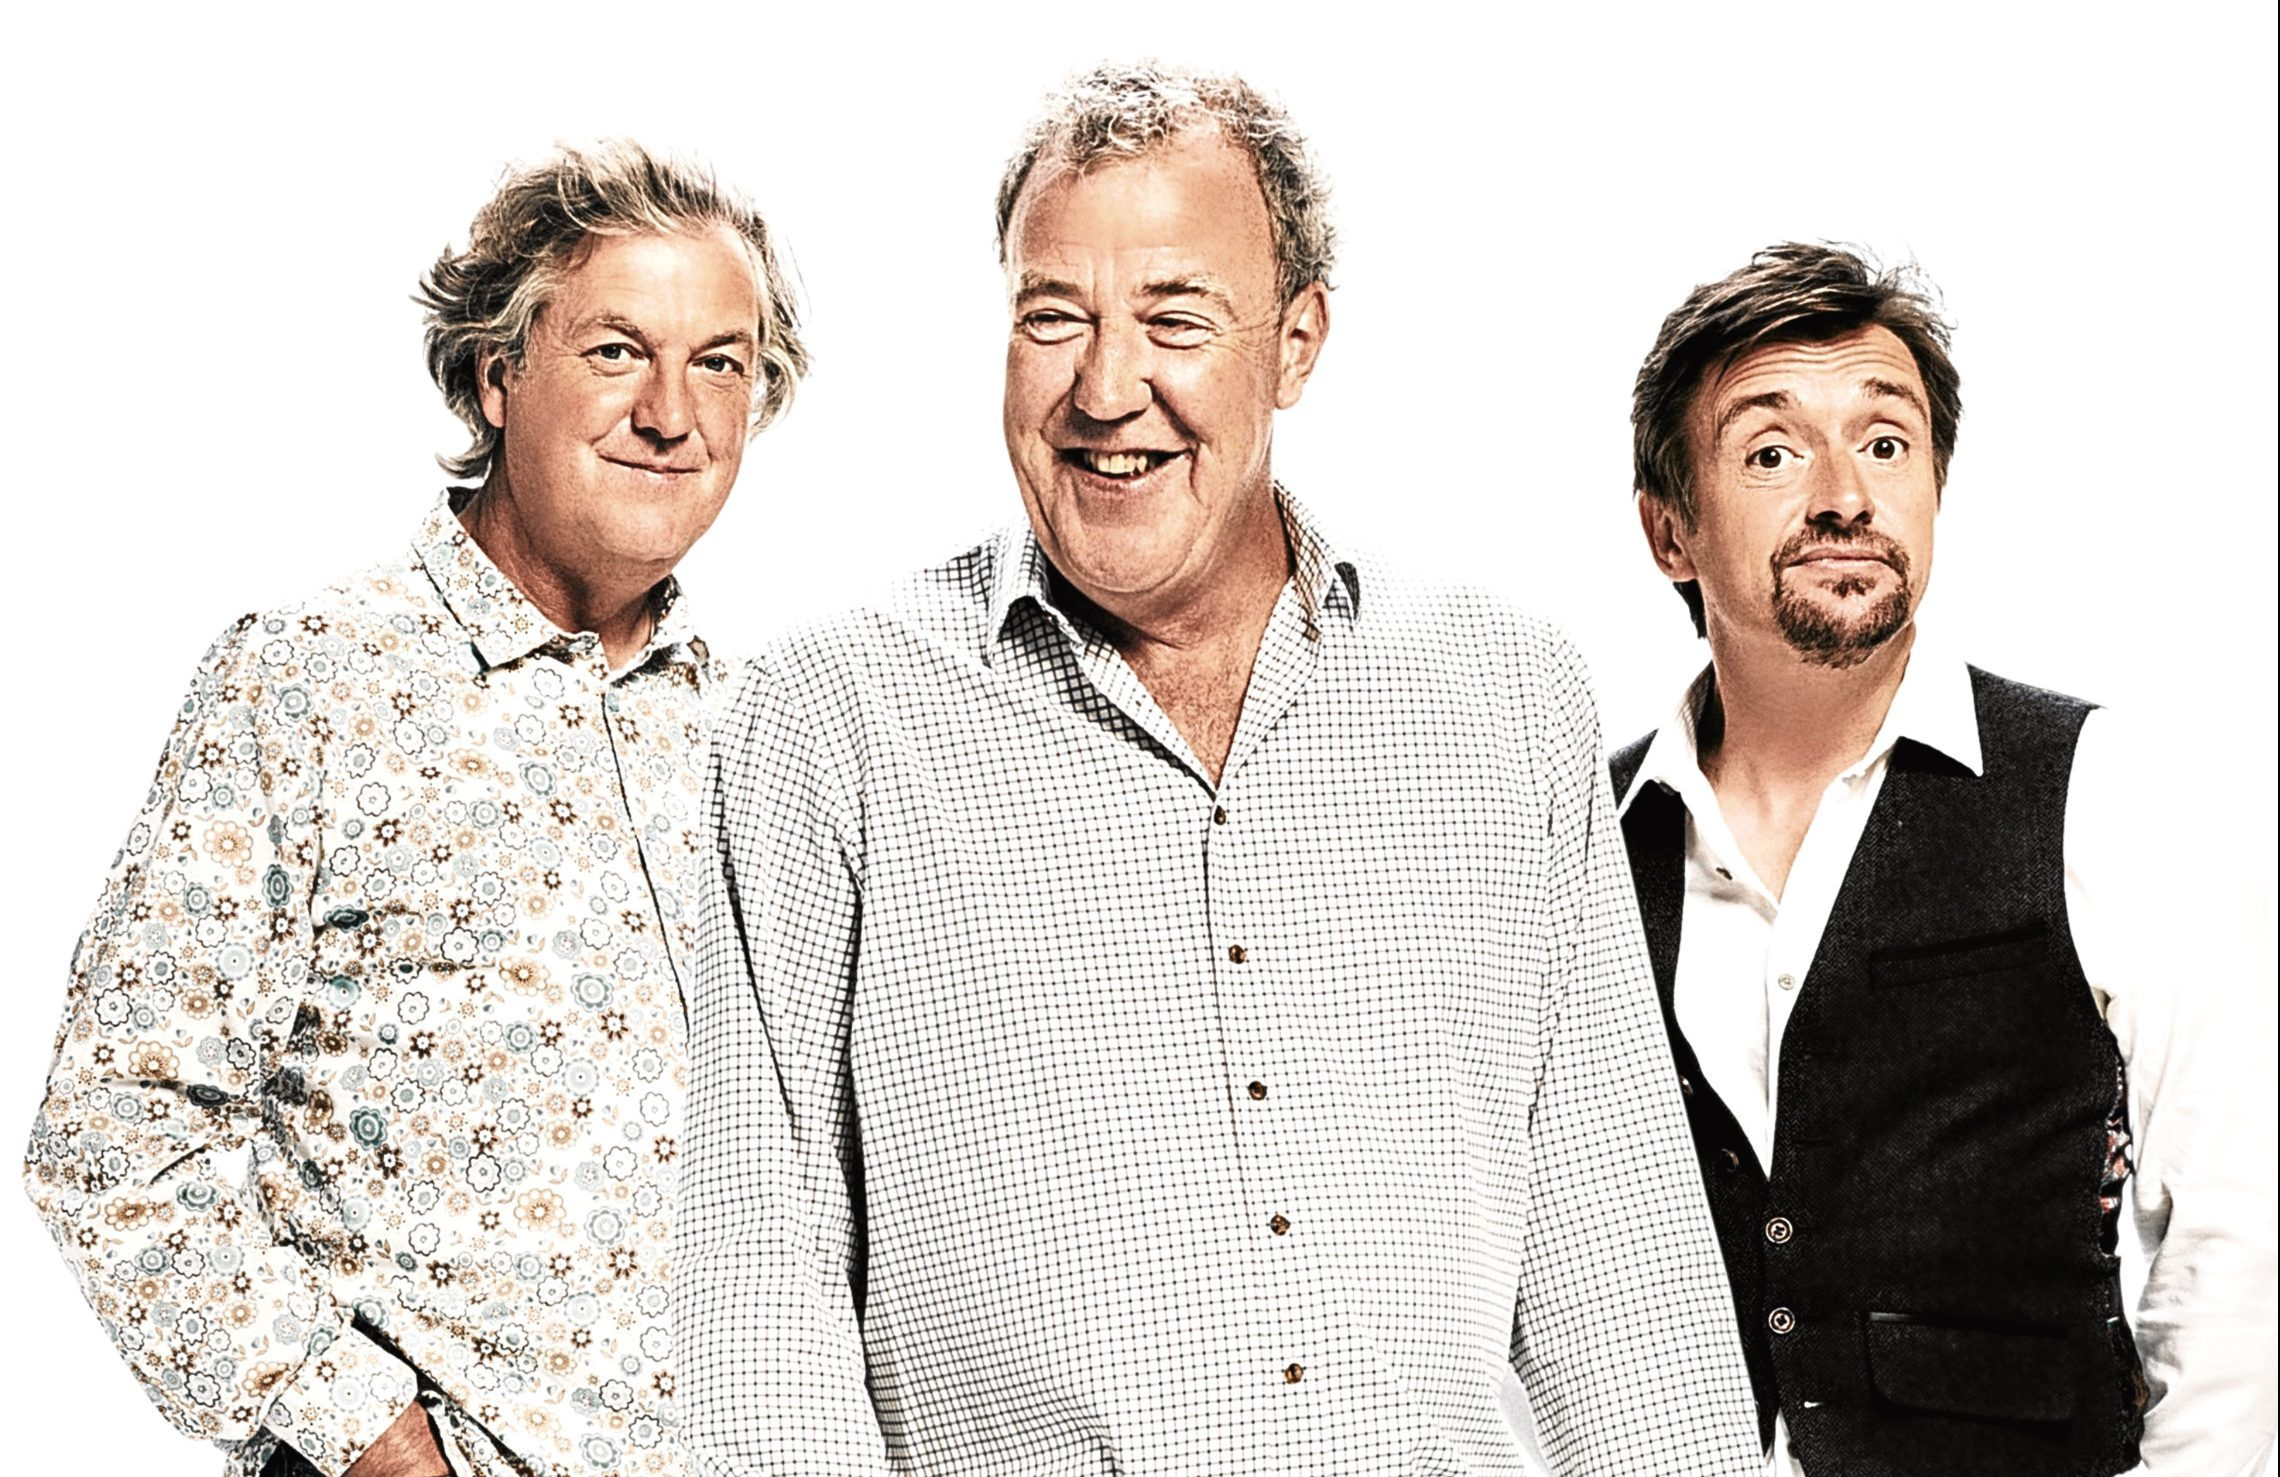 James May, Jeremy Clarkson and Richard Hammond in The Grand Tour